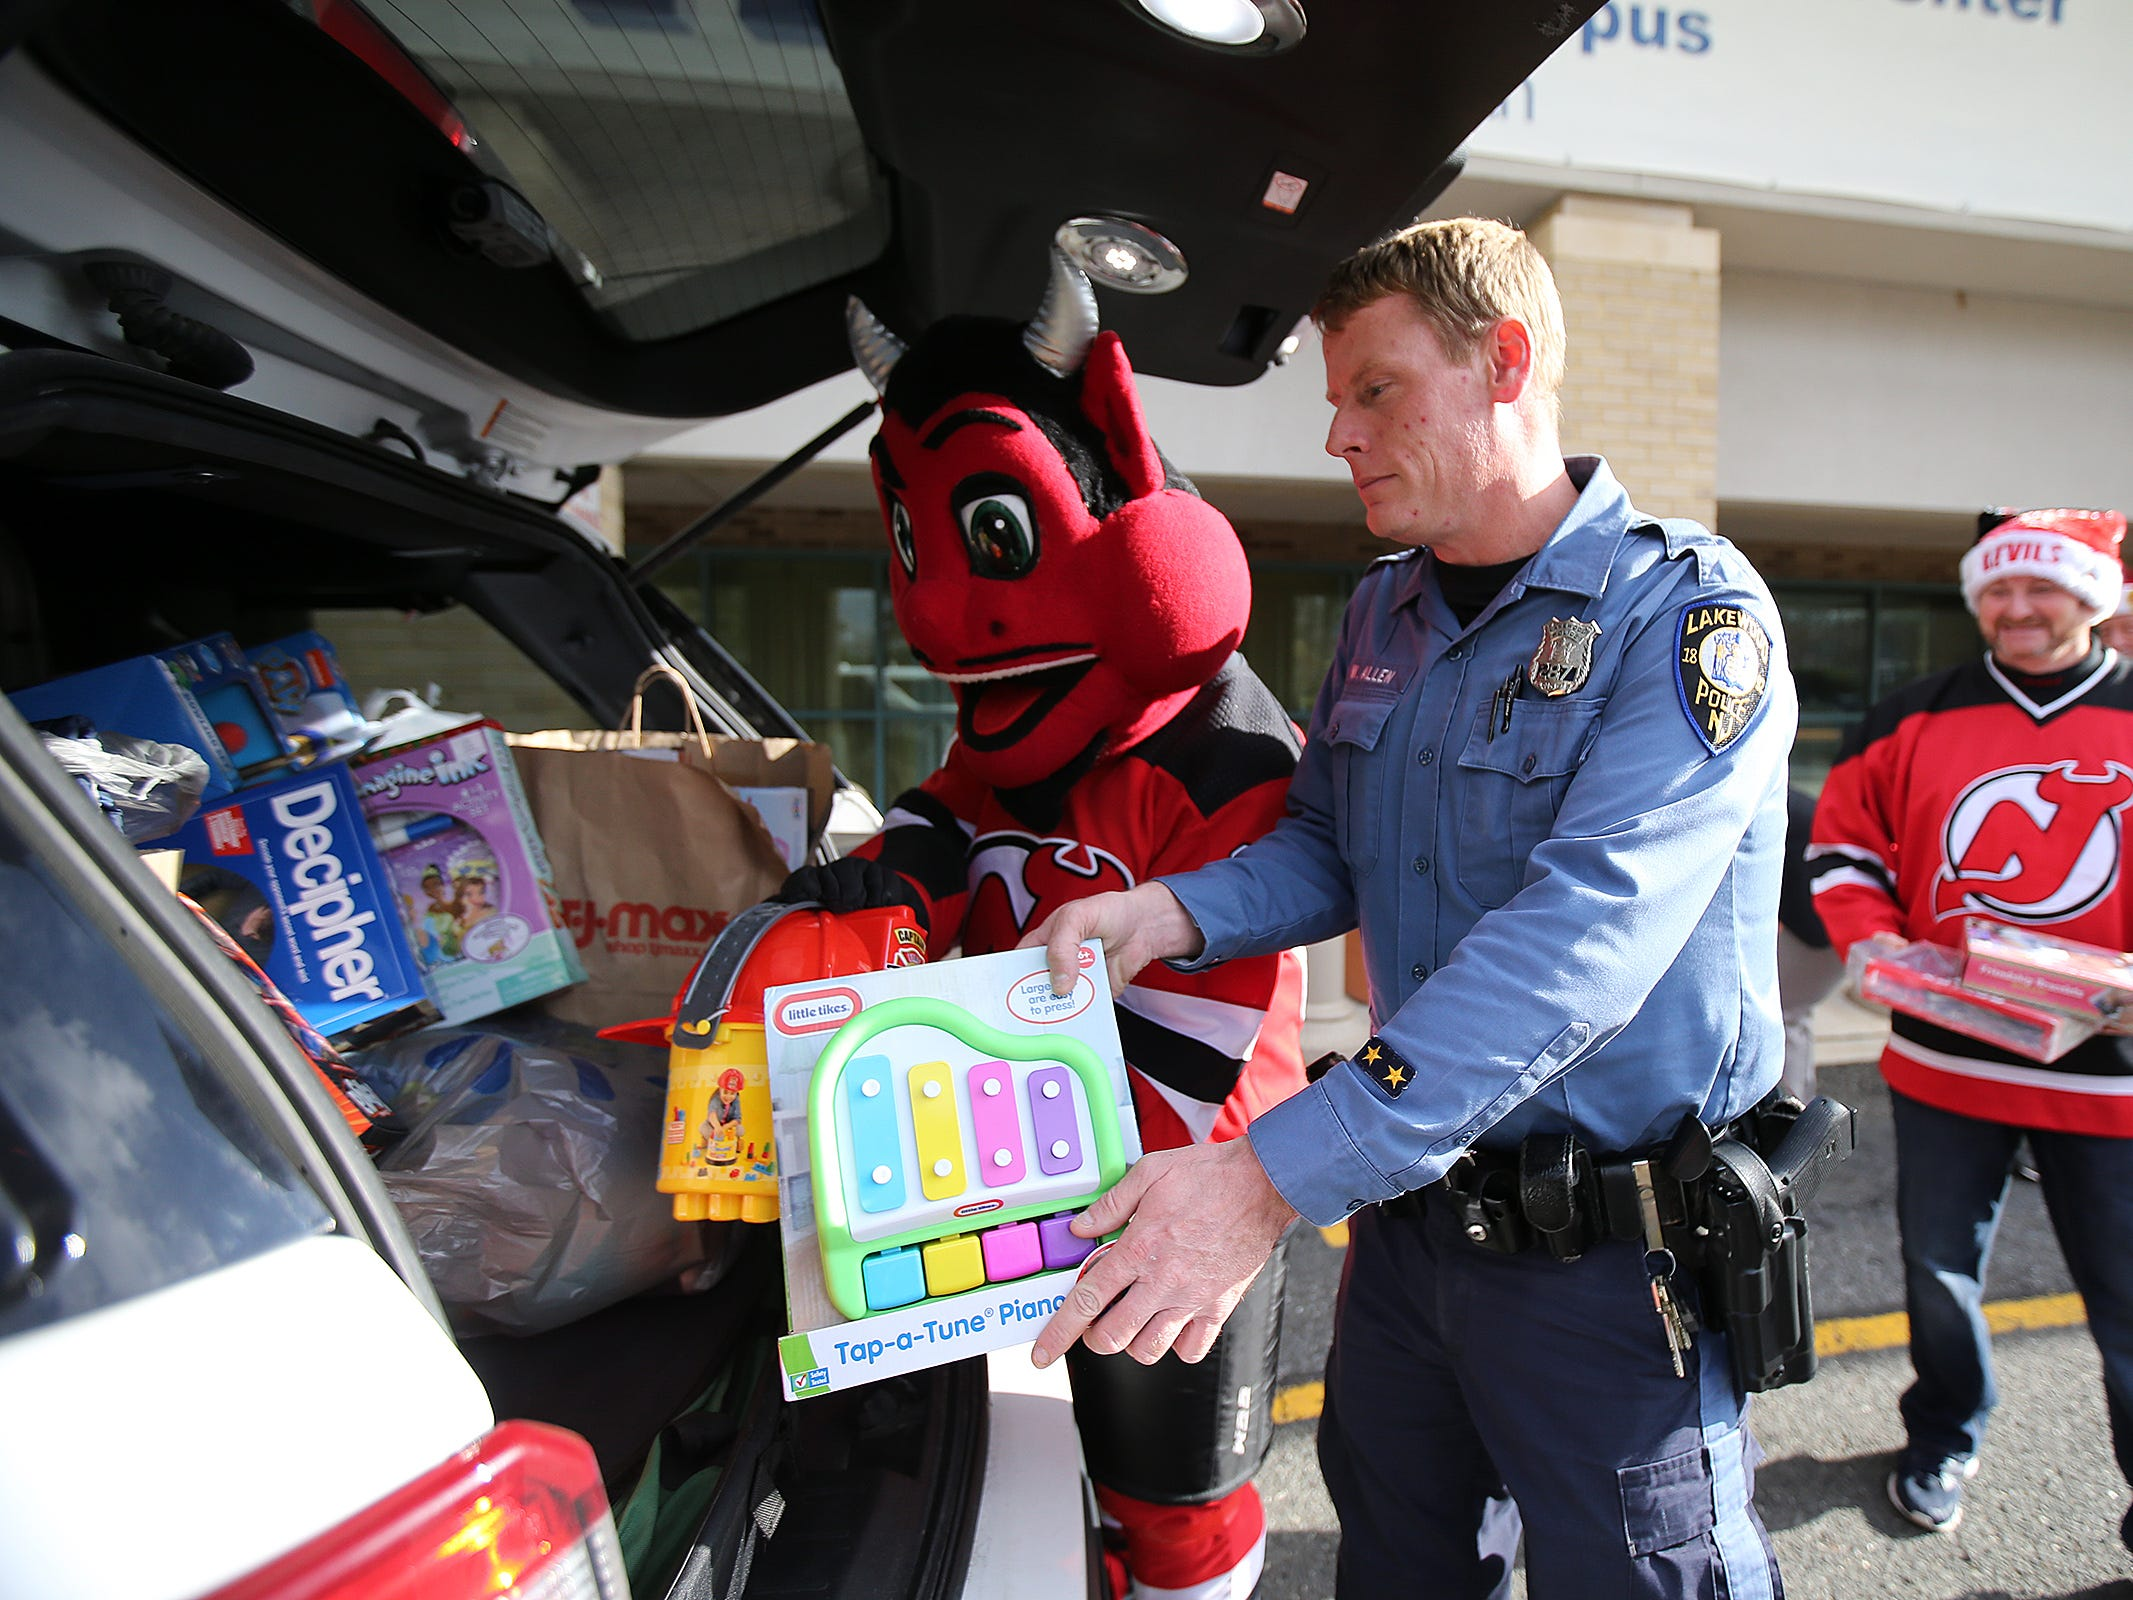 The New Jersey Devils' mascot and Lakewood Police Officer William Allen pack donated toys into a police car during a visit to the Monmouth Medical Center Southern Campus in Lakewood, NJ Monday, December 17, 2018.